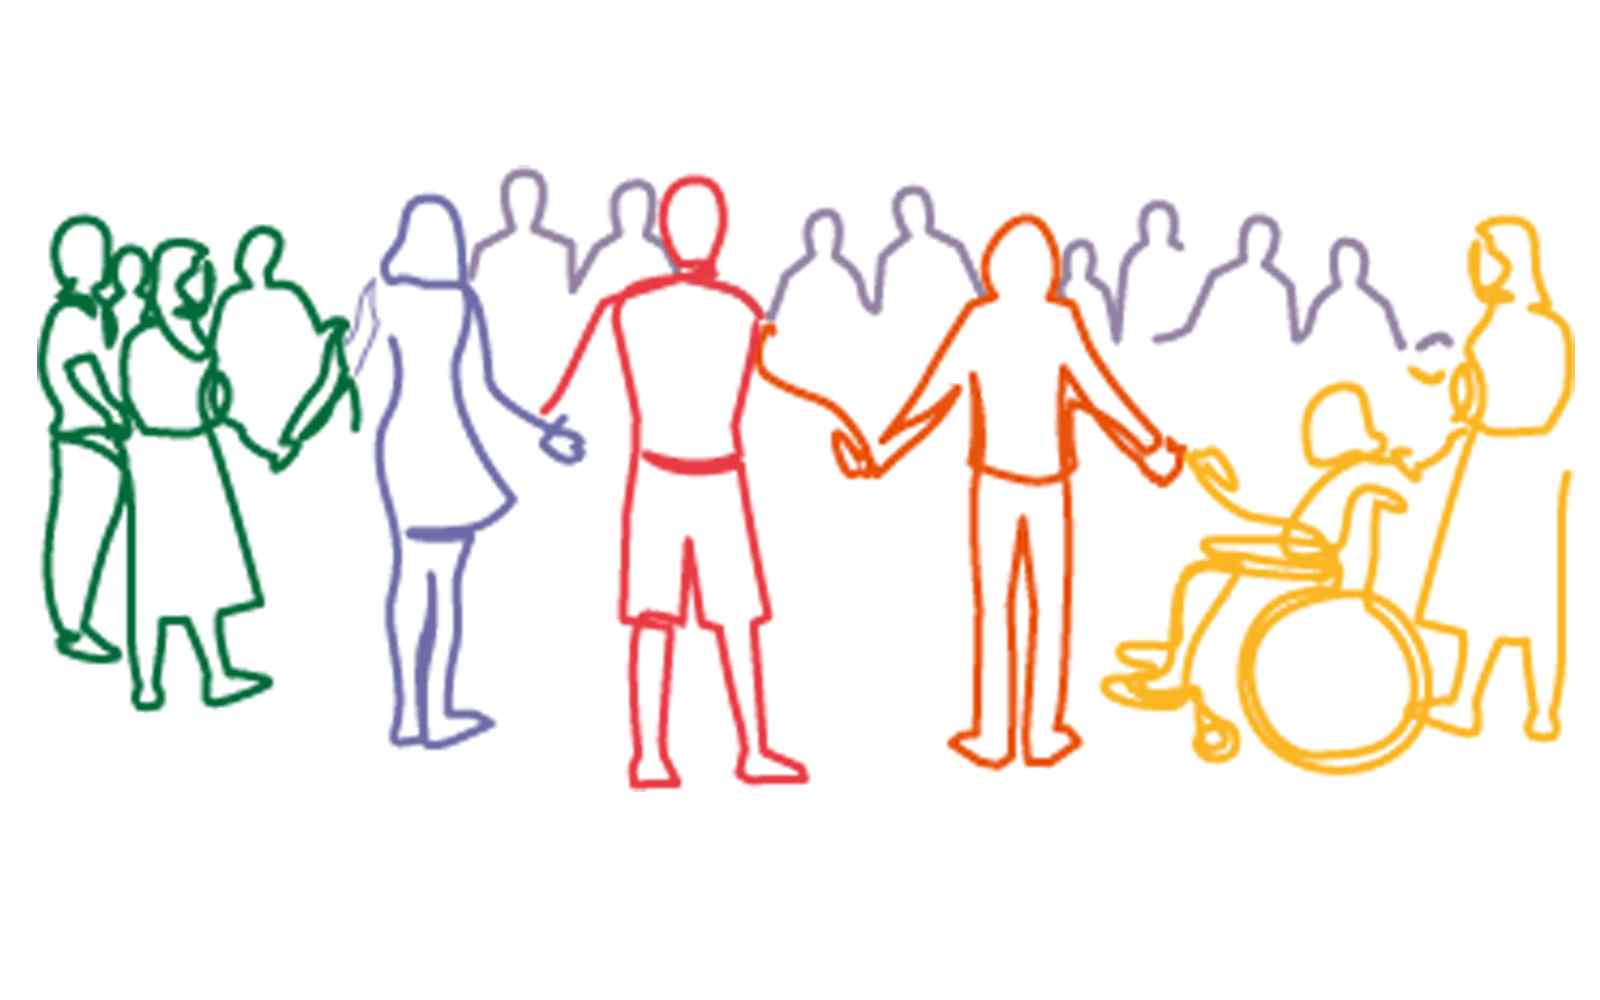 Line drawing of people in circle holding hands